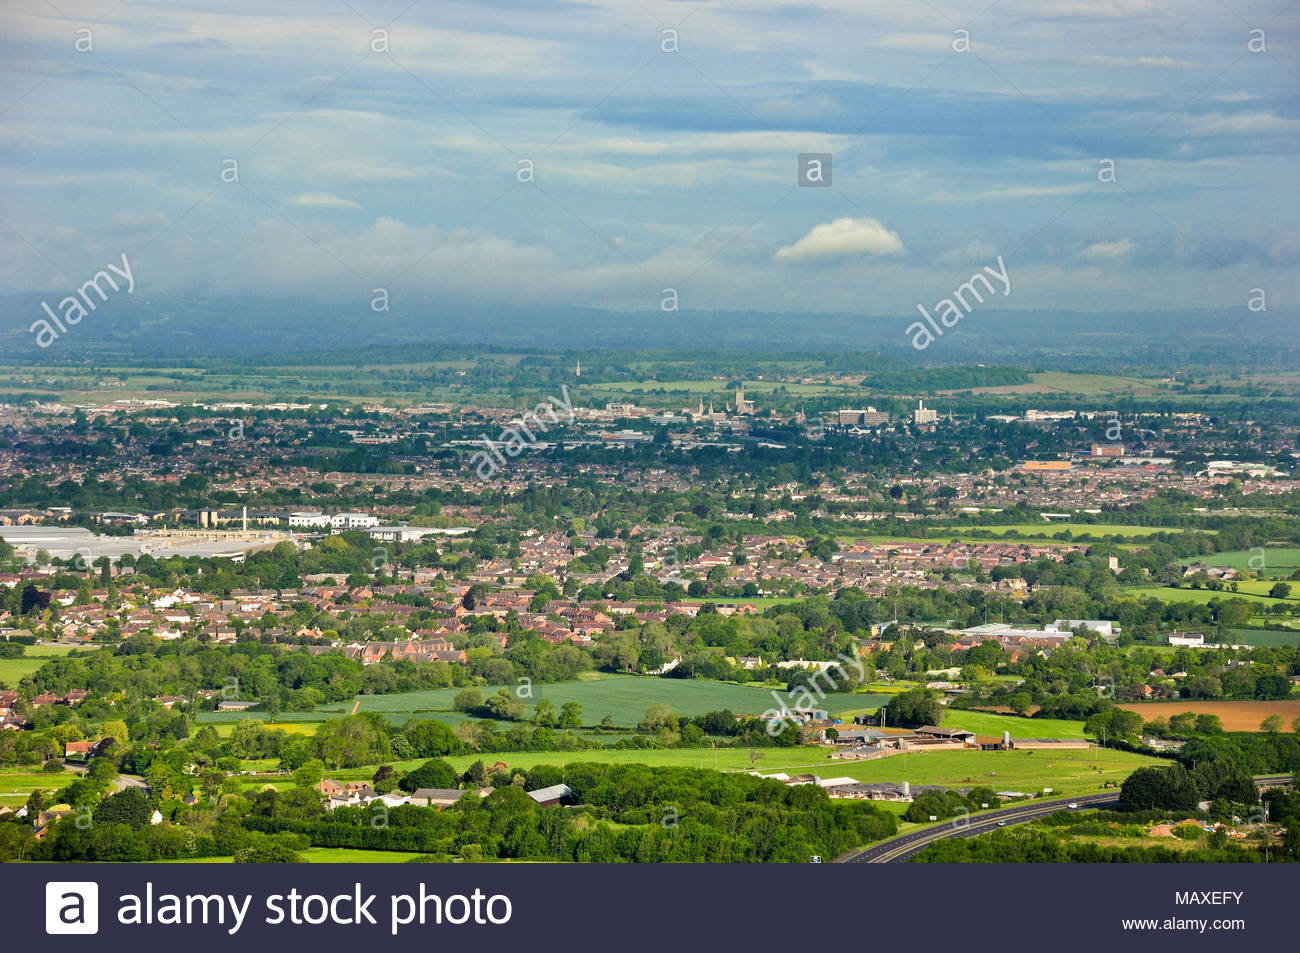 The view looking towards the city of Gloucester from Barrow Wake viewpoint at Birdlip, Gloucestershire, England, UK - Stock Image